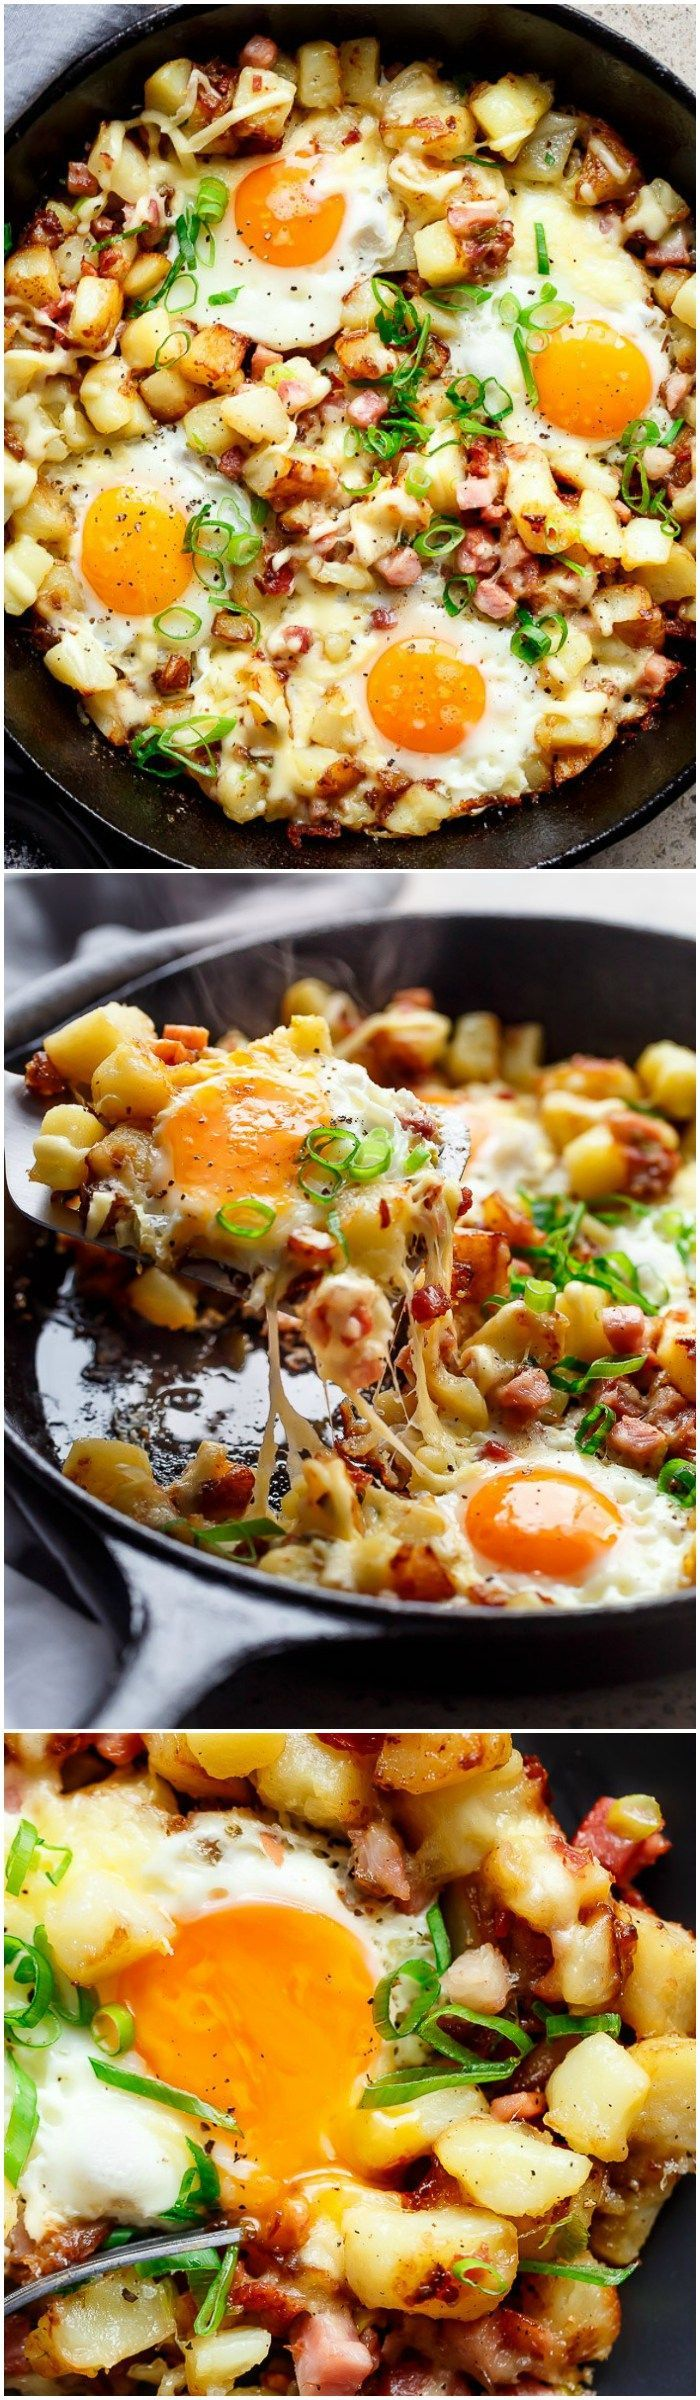 Cheesy Bacon and Egg Hash for breakfast, brunch, lunch or dinner! Easy to make and ready in 30 minutes